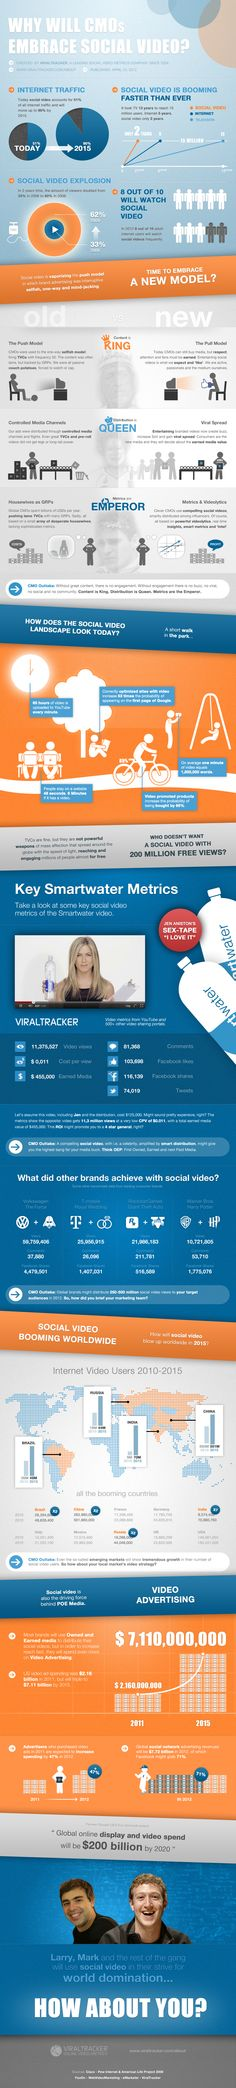 Interesting infographic about how CMOs should/could be thinking about social video